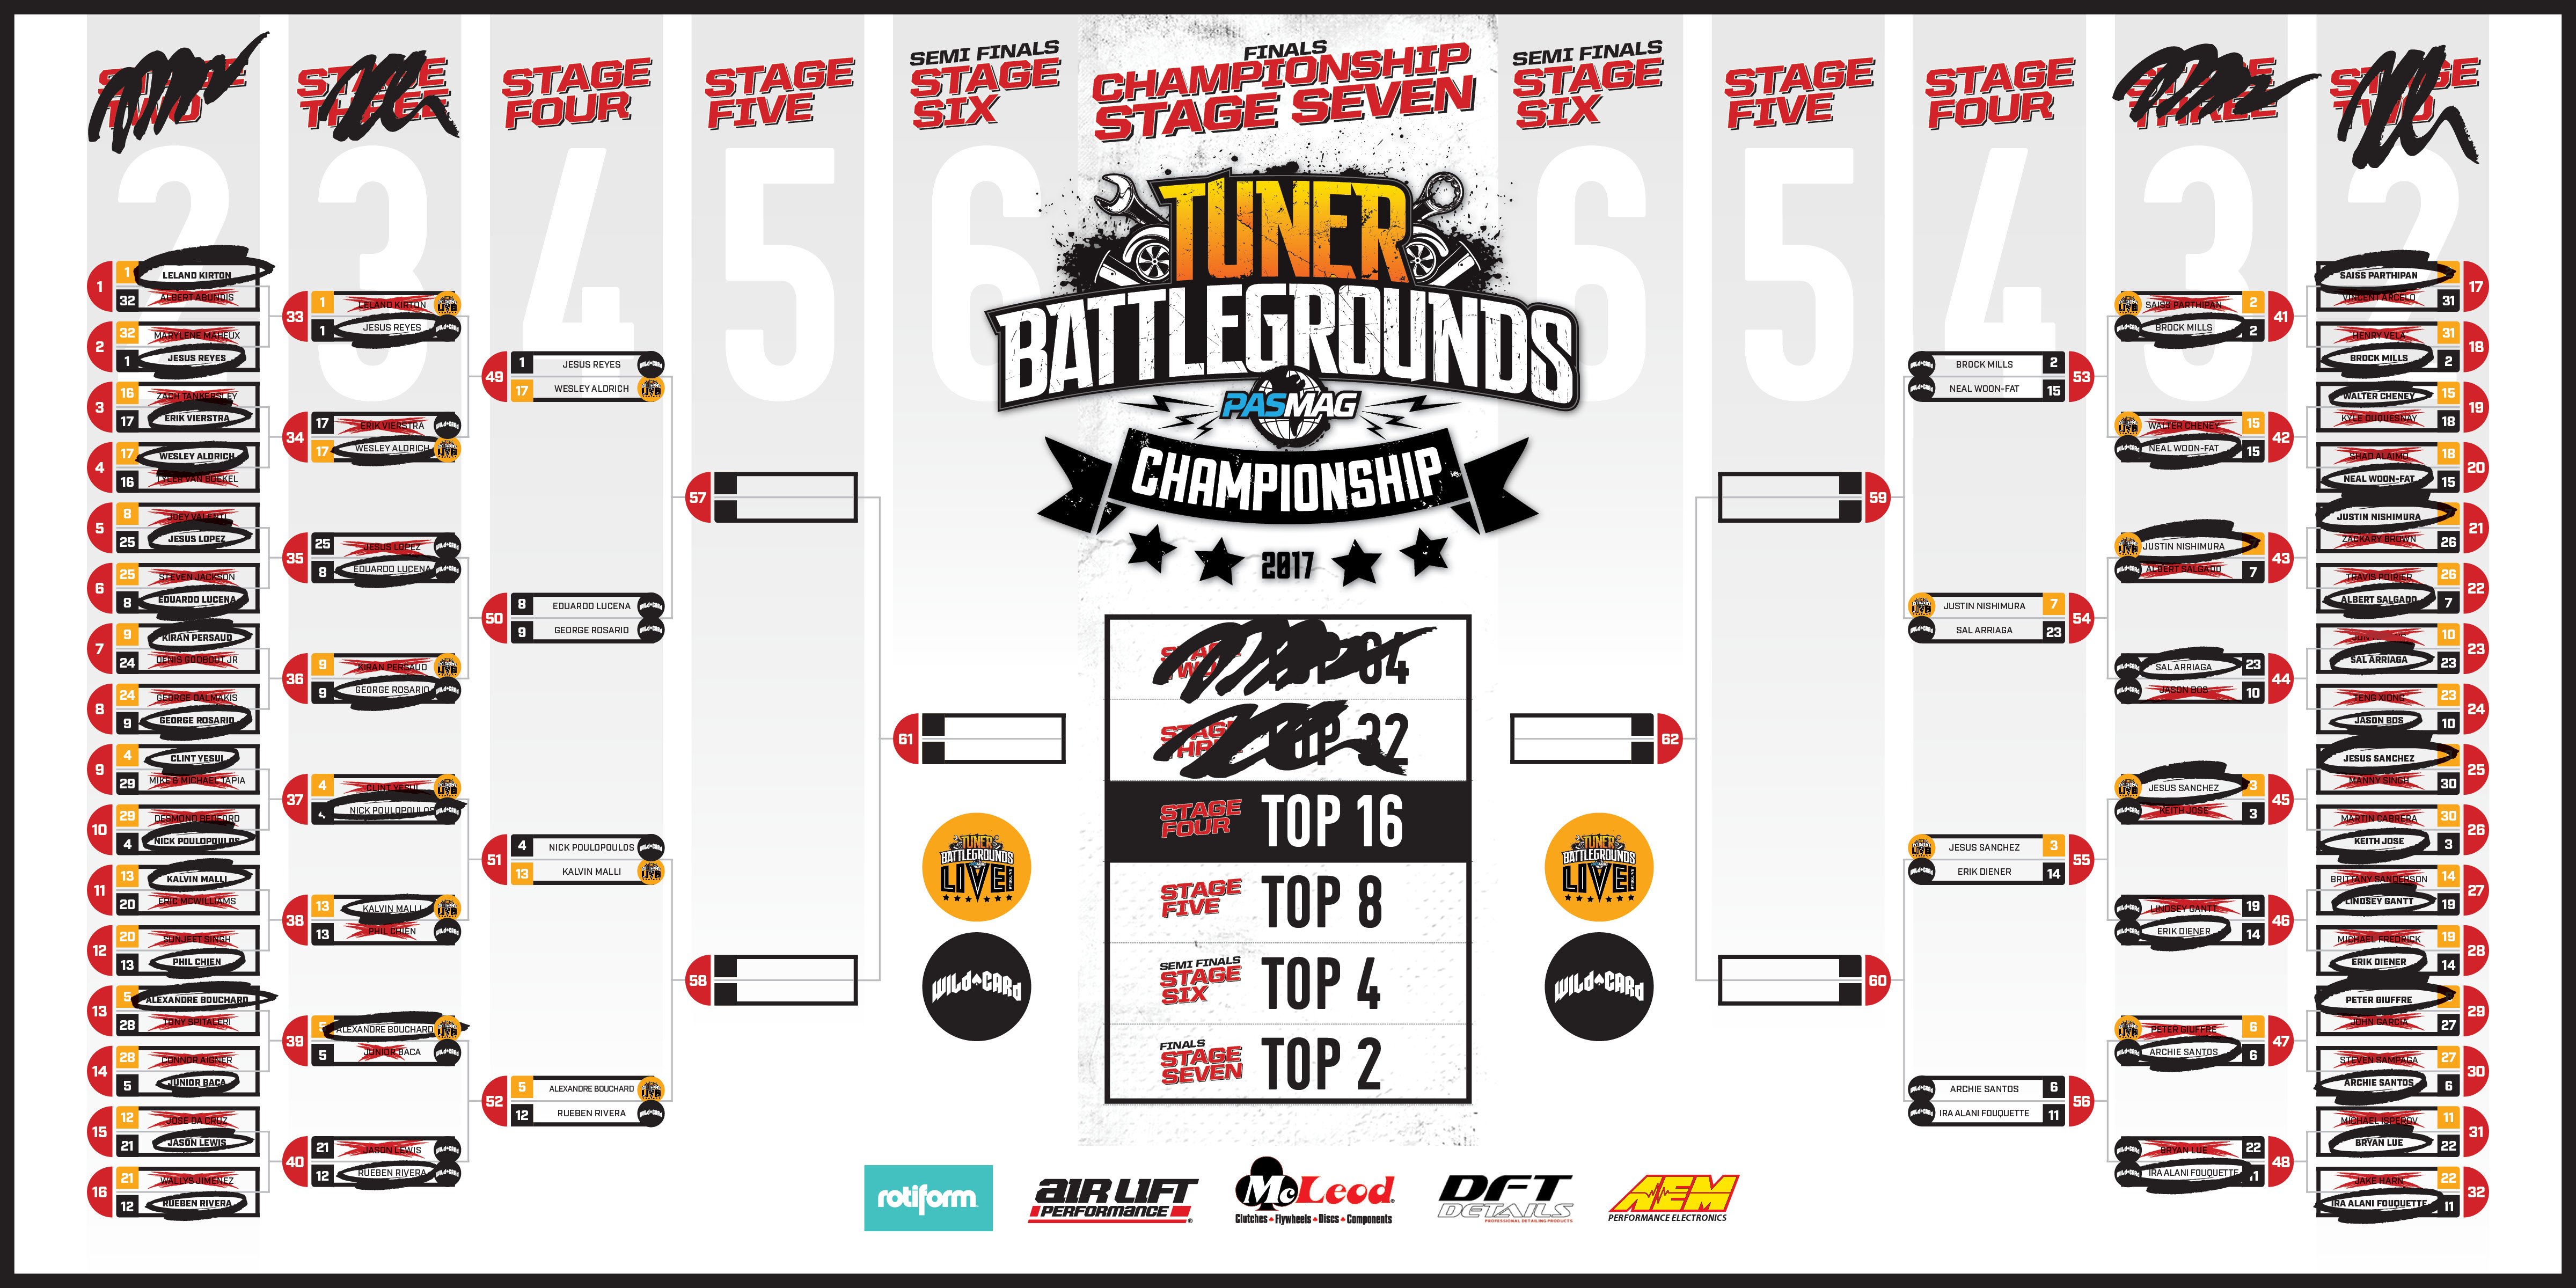 2017 Tuner Battlegrounds Championship Bracket Stage 4